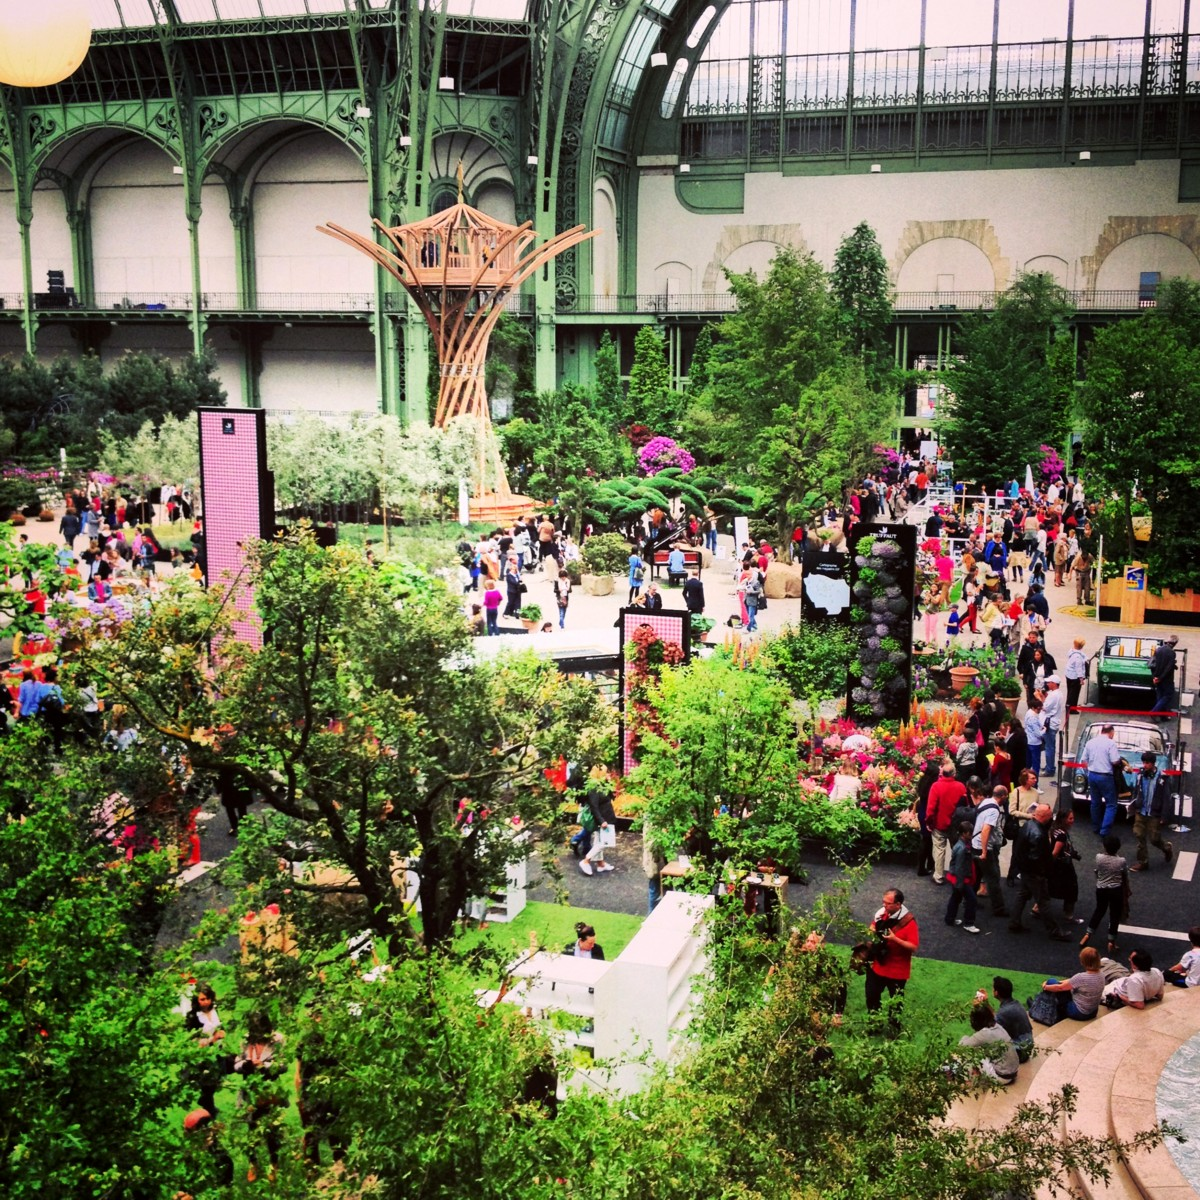 Nef du grand palais l 39 art du jardin exposiiton v nement for Expo jardin paris